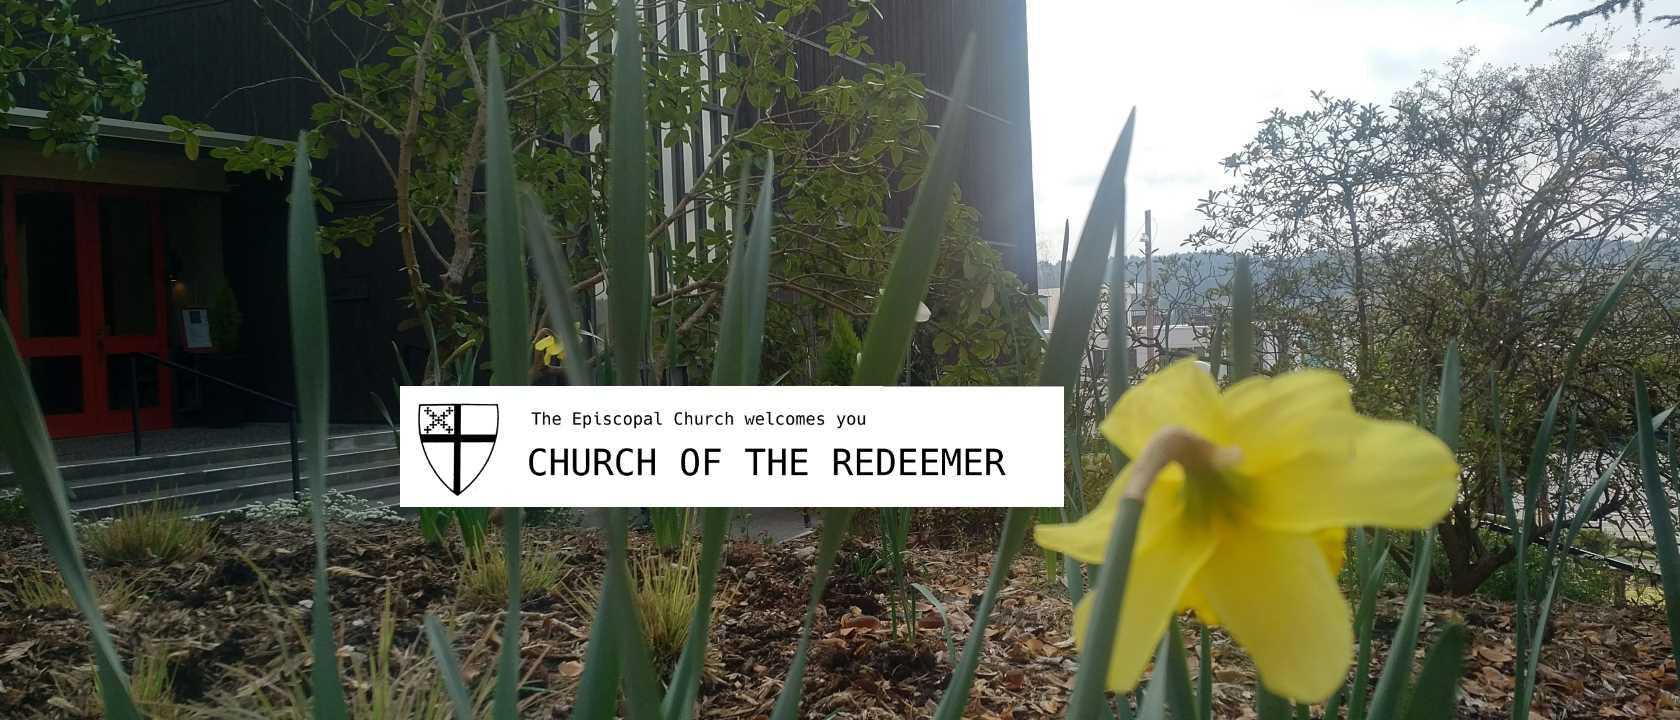 Church of the Redeemer: The Episcopal Church welcomes you. A part of the loving, life-giving, and liberating Jesus Movement.